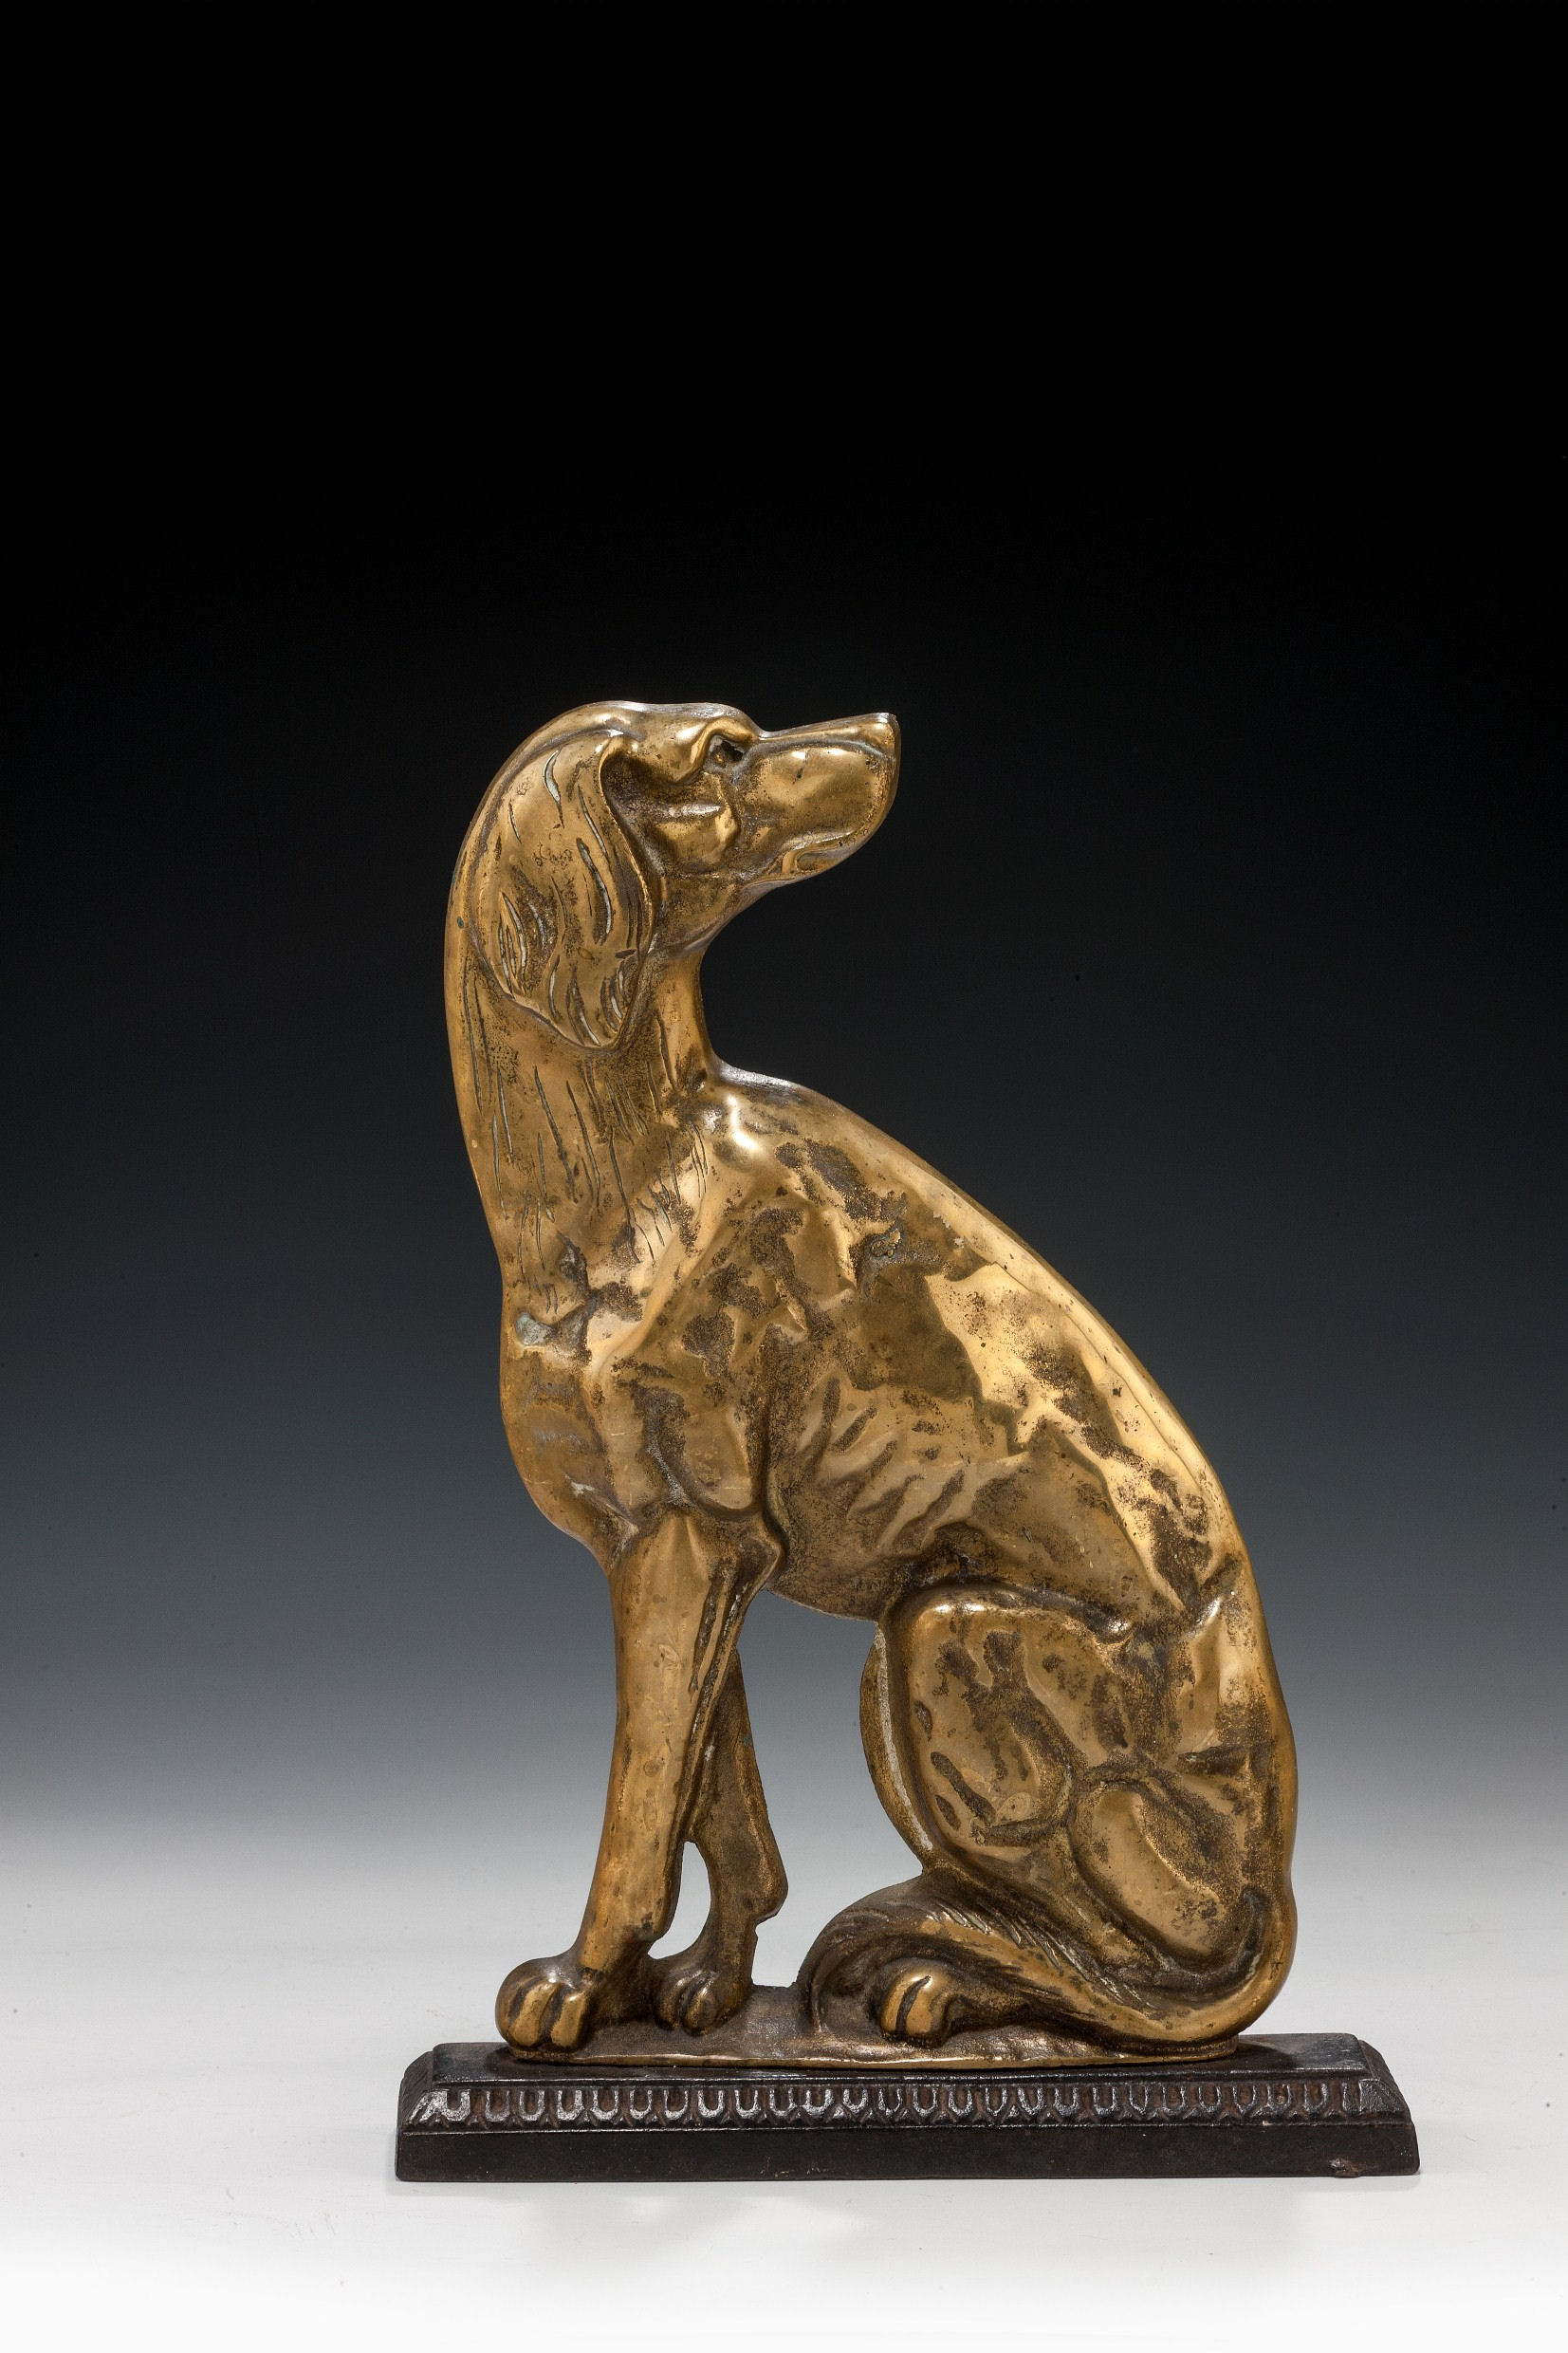 Antique Brass Door Stop Of A Seated Dog Richard Gardner Antiques